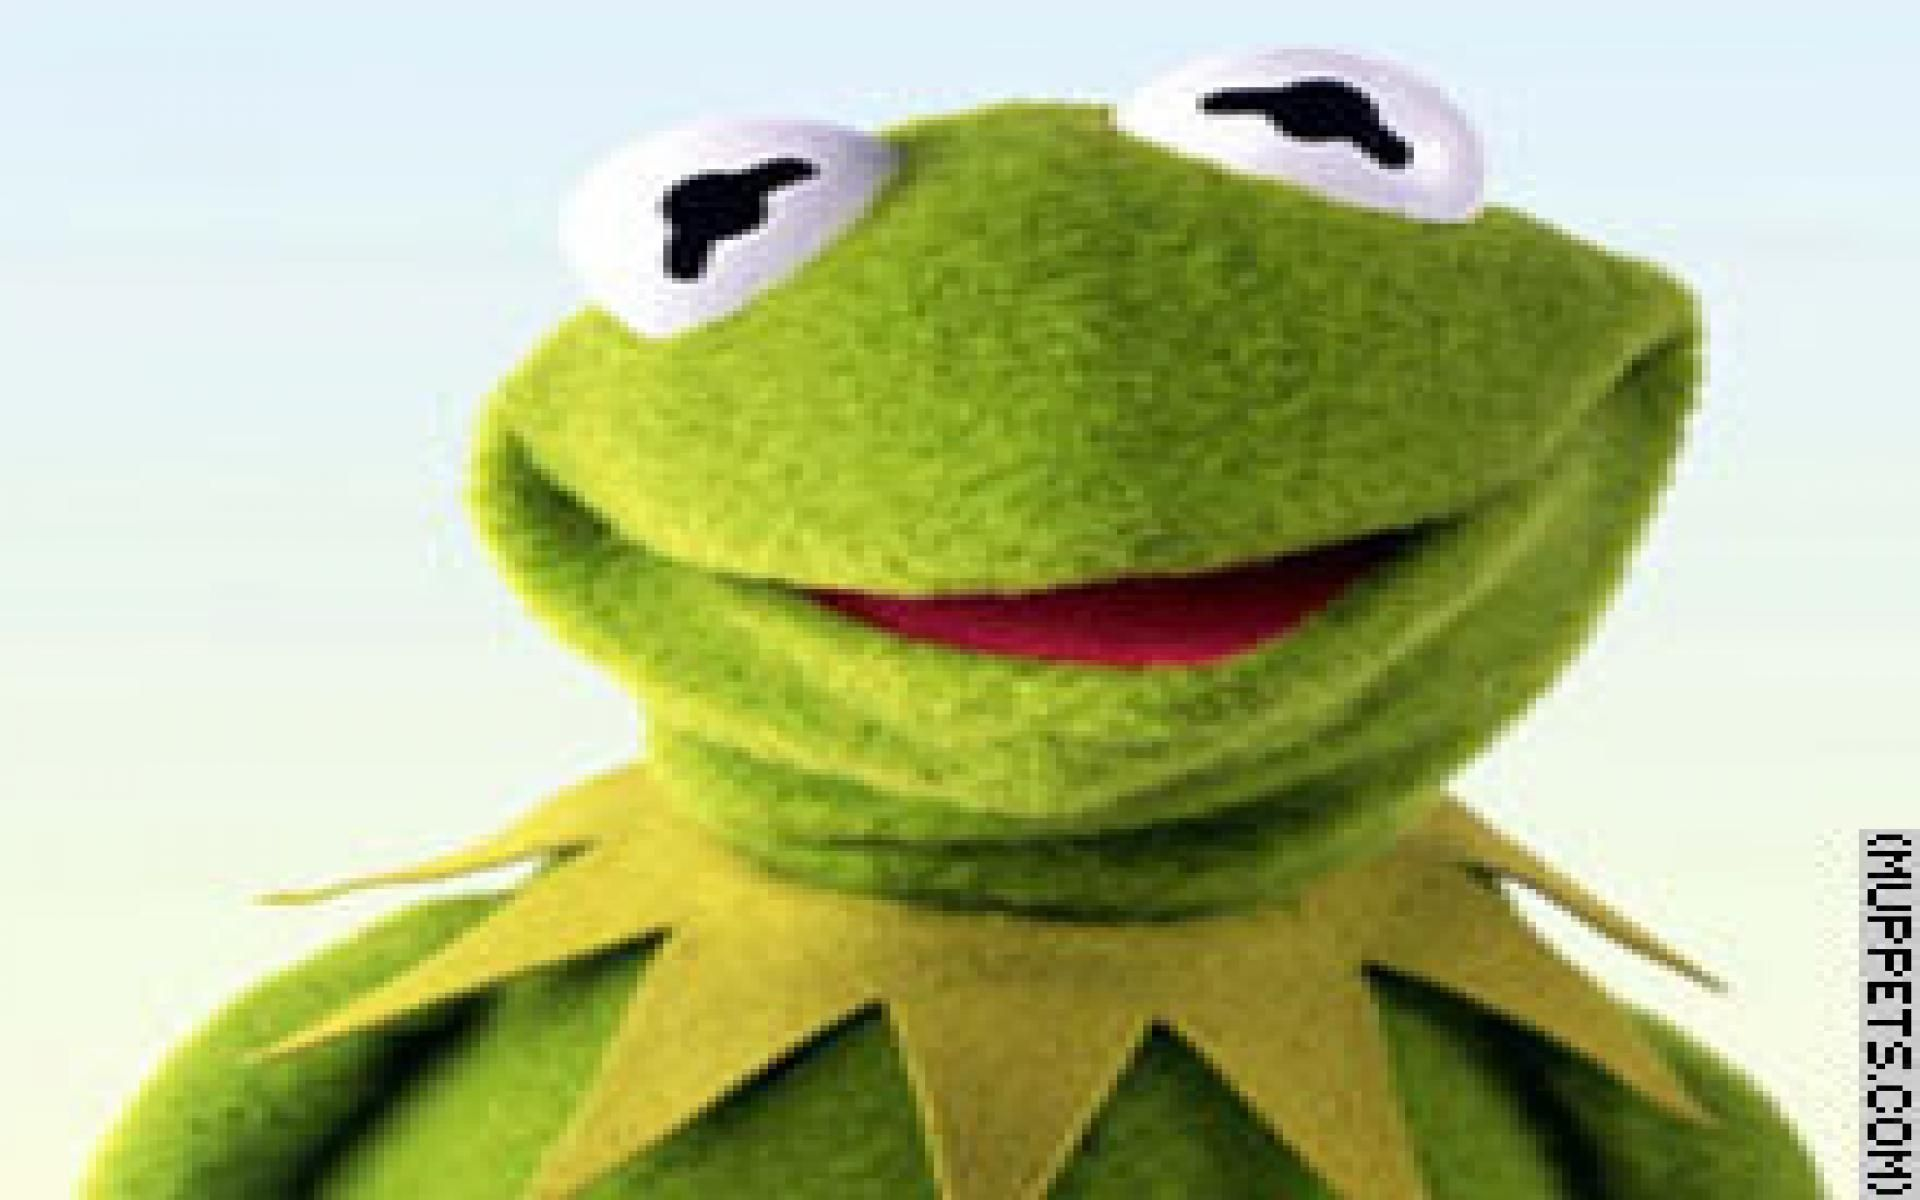 Supreme Kermit The Frog Wallpapers Top Free Supreme Kermit The